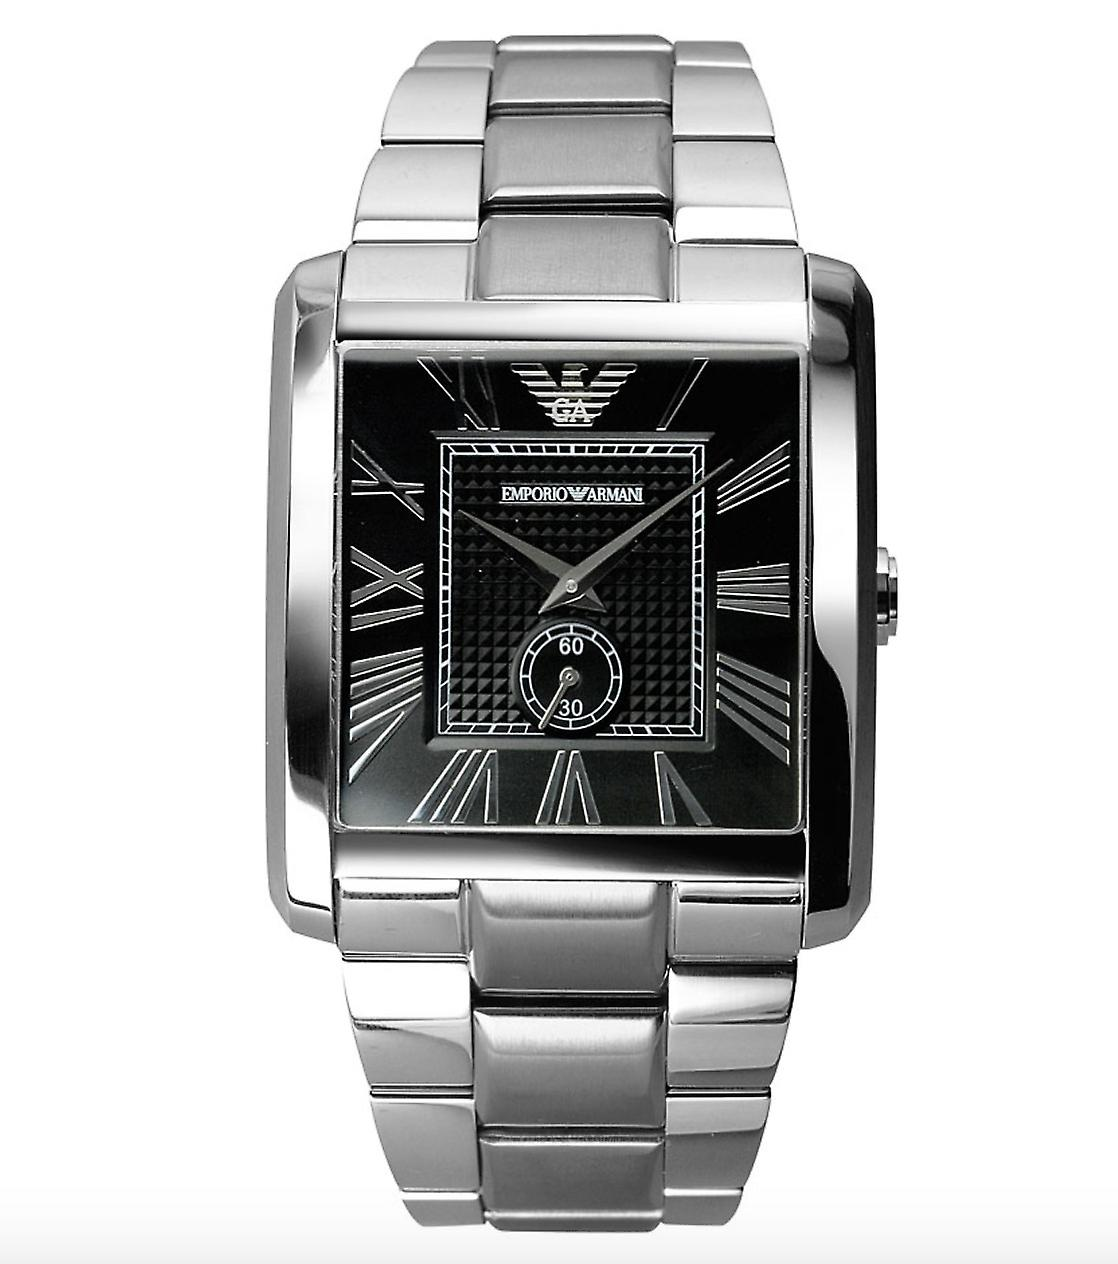 Emporio Armani Ar1642 Men's Classic Stainless Steel Watch